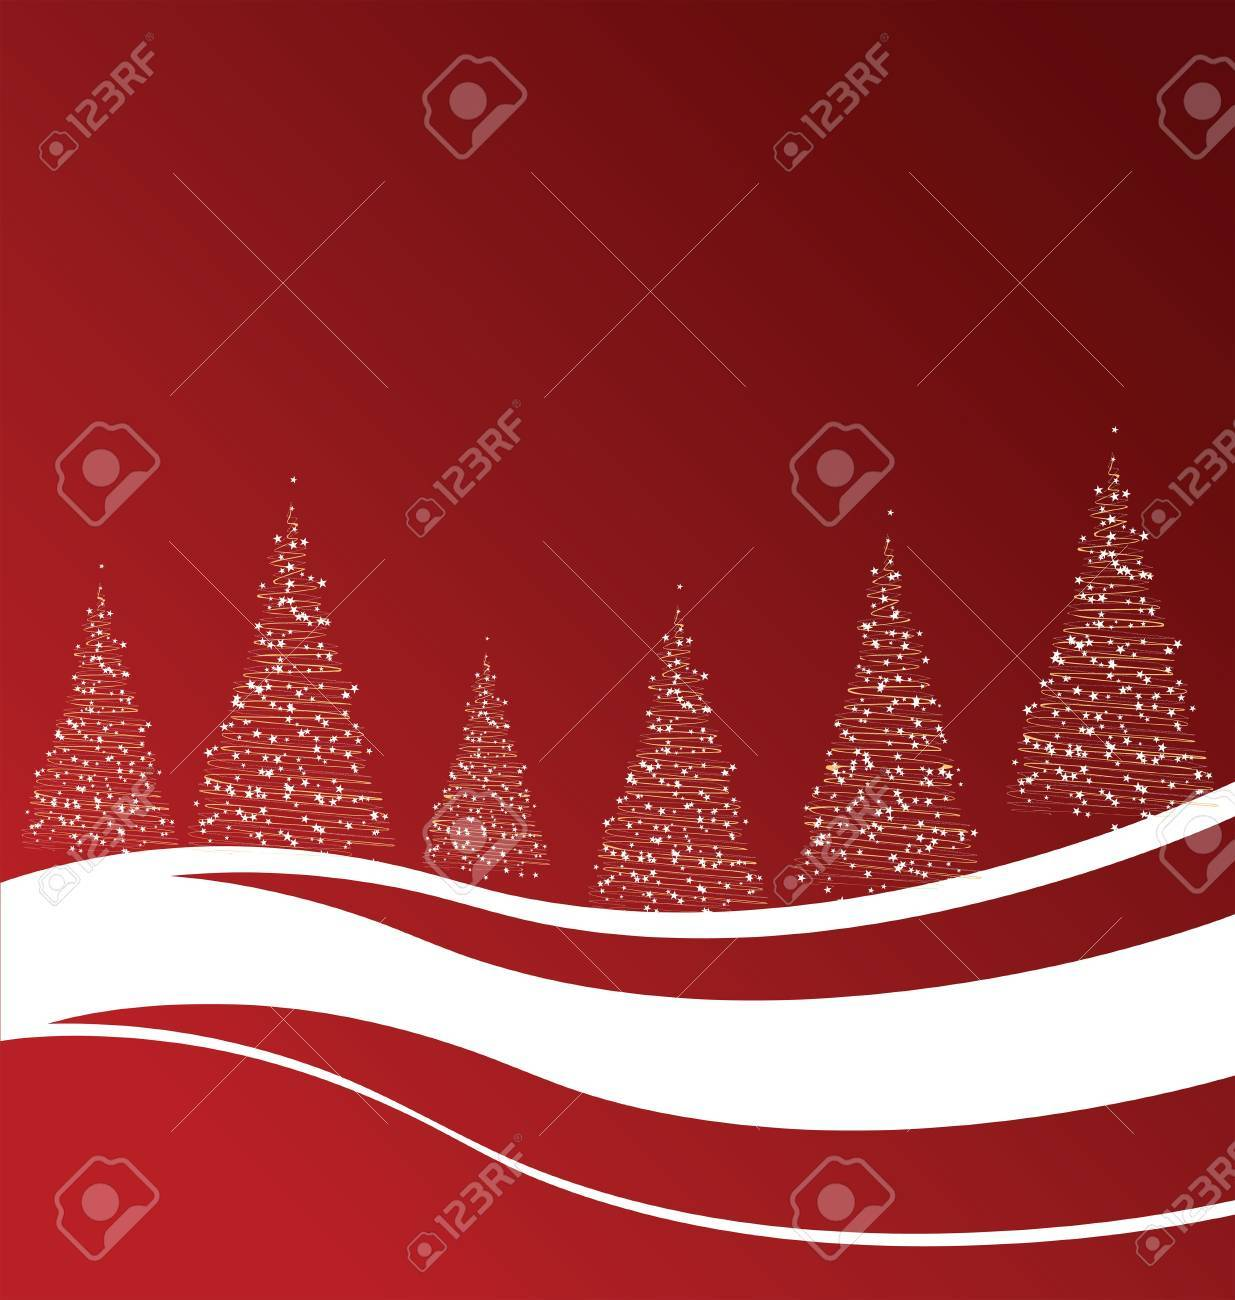 Christmas greeting card template stock photo picture and royalty christmas greeting card template stock photo 5871582 m4hsunfo